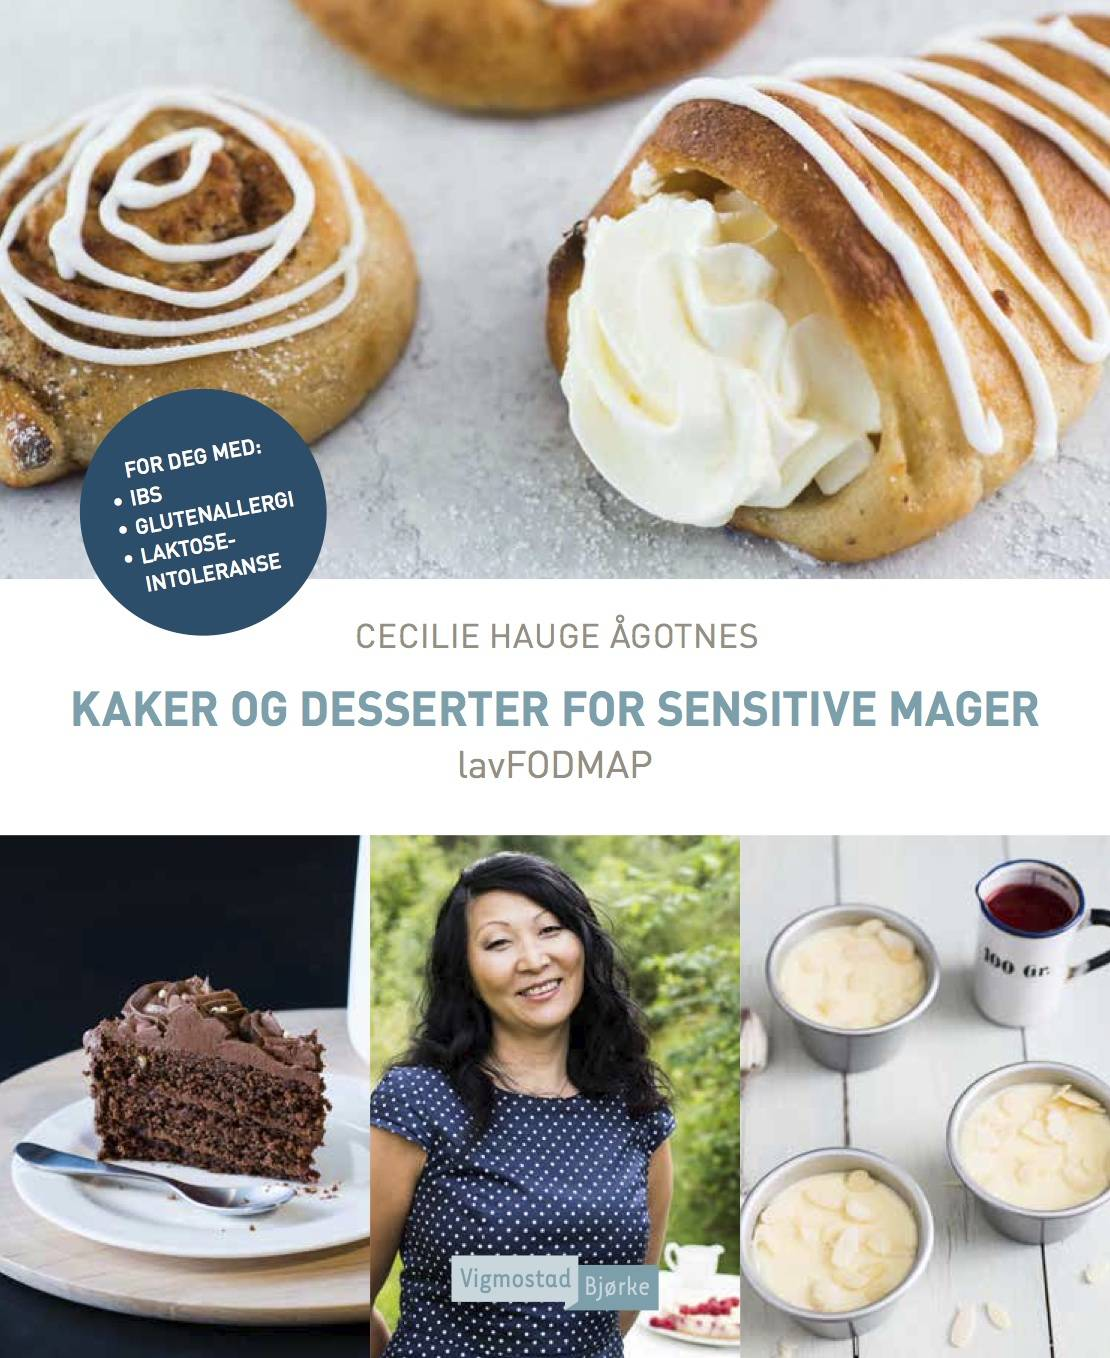 Kaker og desserter for sensitive mager lavFODMAP